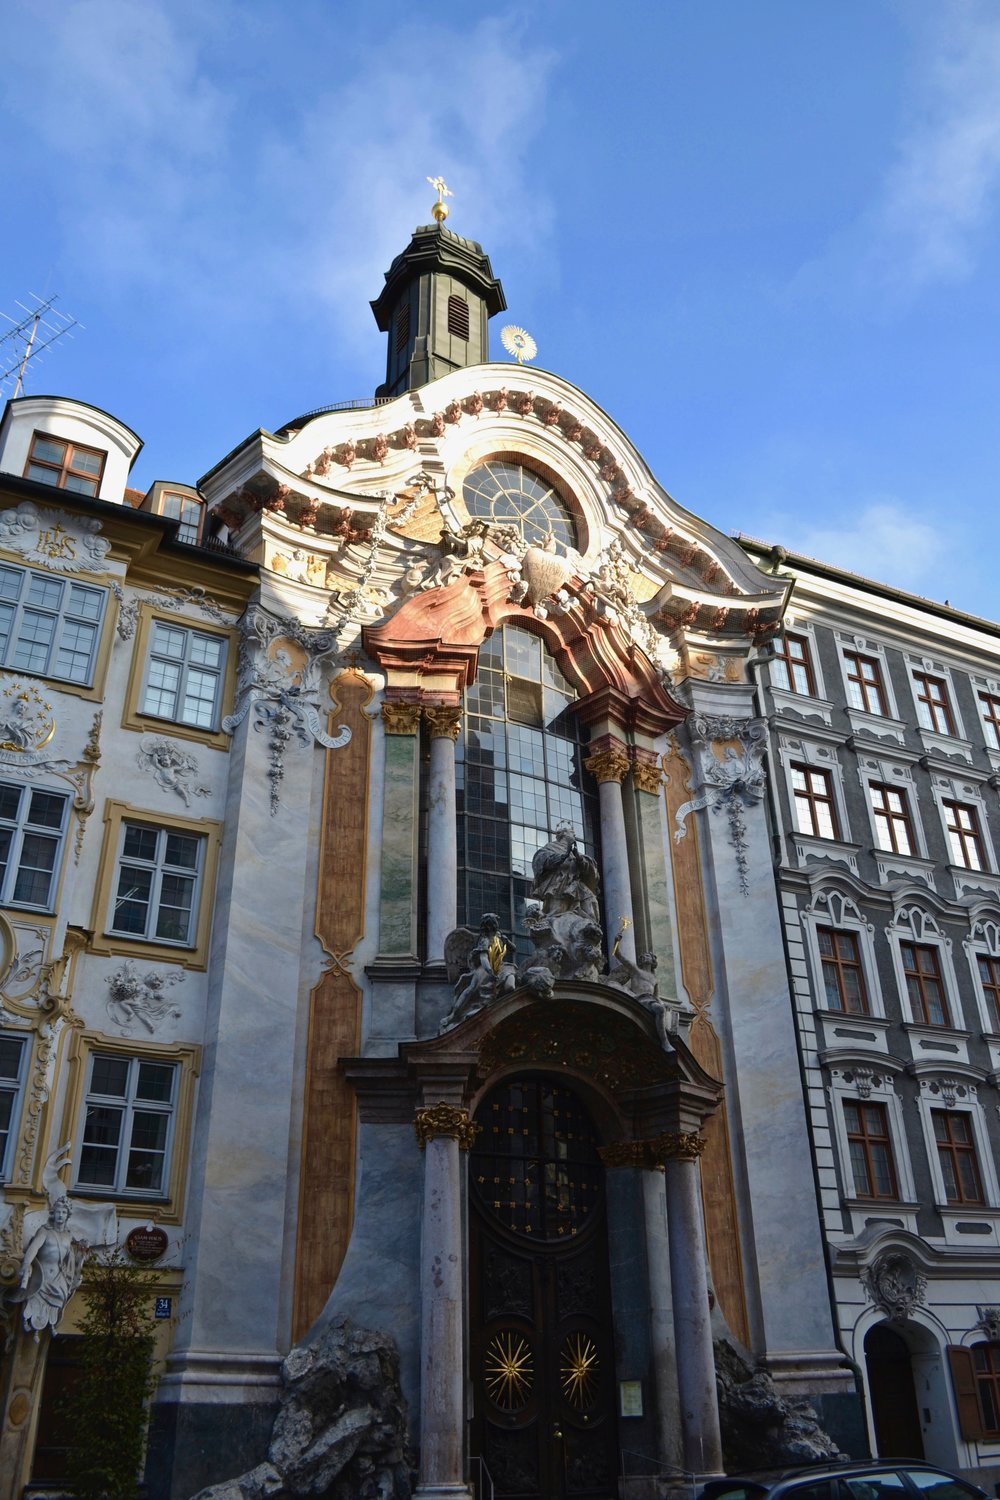 The exterior of the Asamkirche in Munich